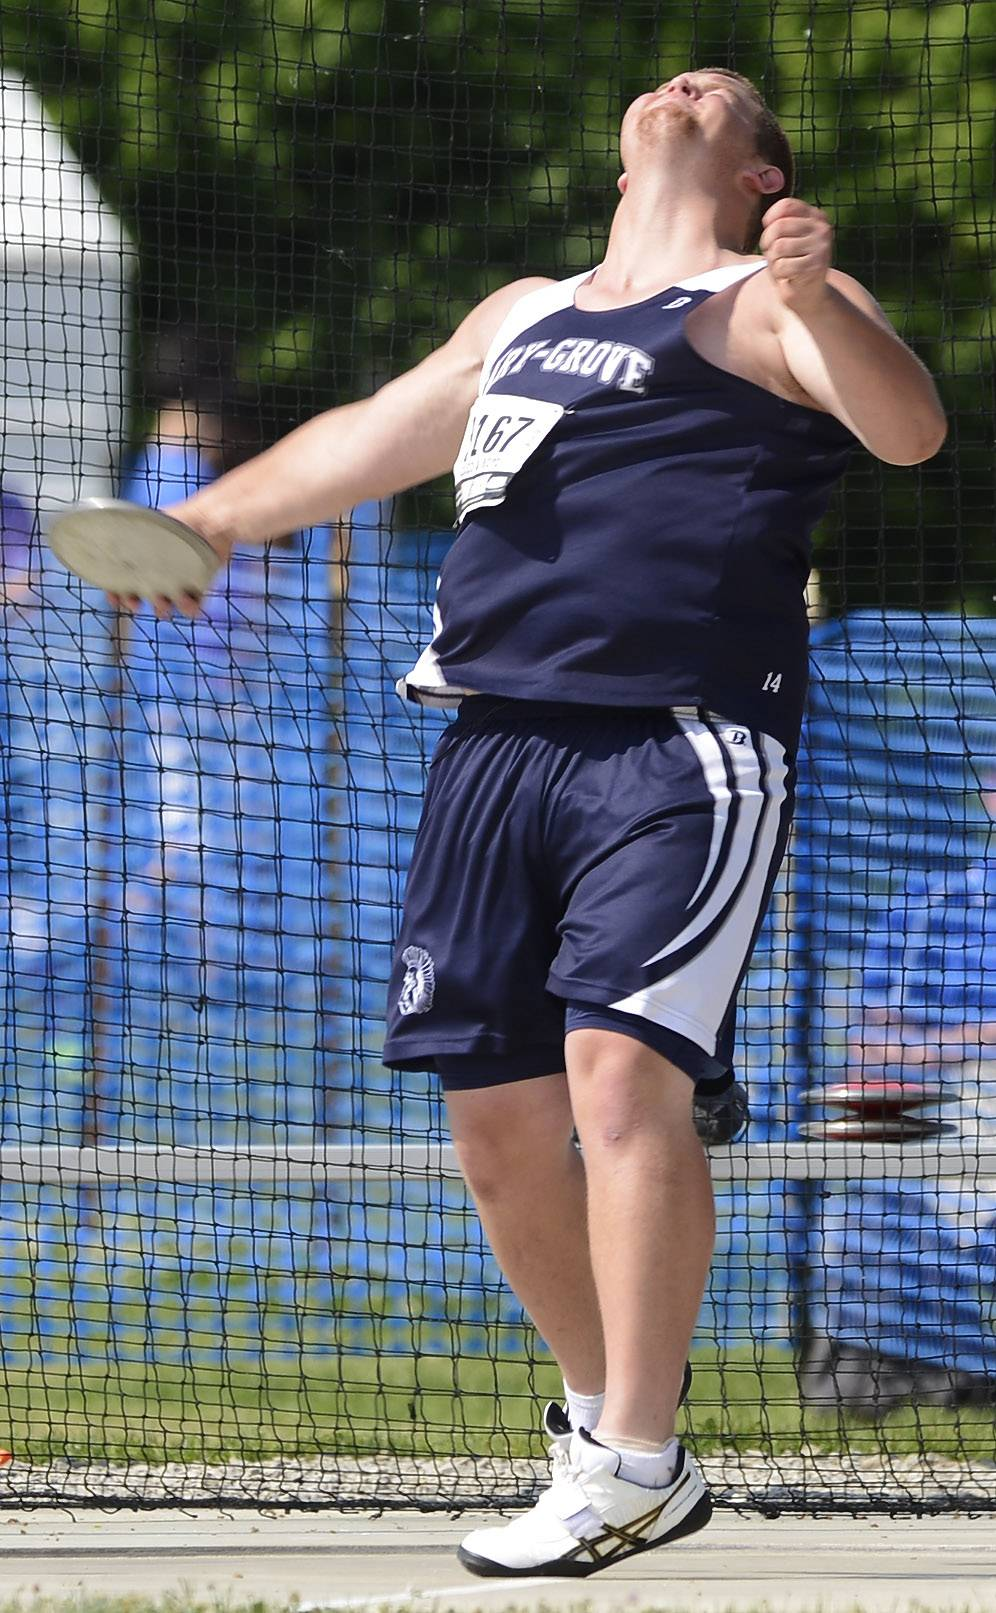 Cary-Grove's Ricky Hurley competes in the discus during the boys Class 3A state track and field preliminaries in Charleston Friday.